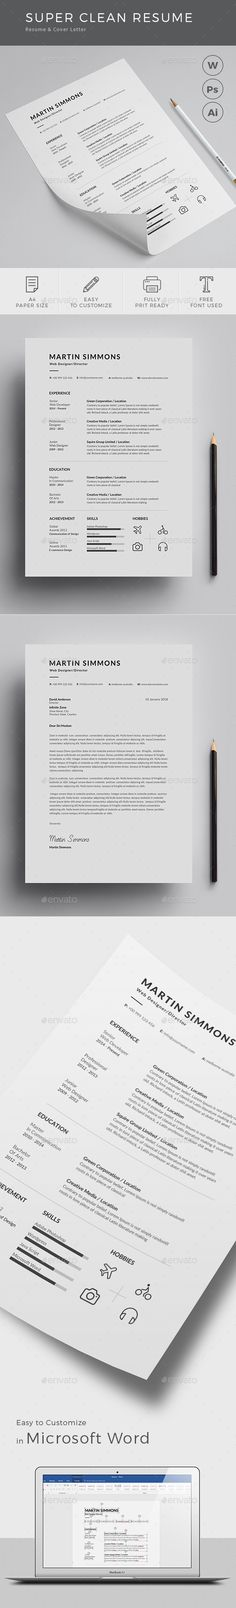 Resume\/CV - Ashley Resume cv, Cover letter template and Letter - resume customization reasons